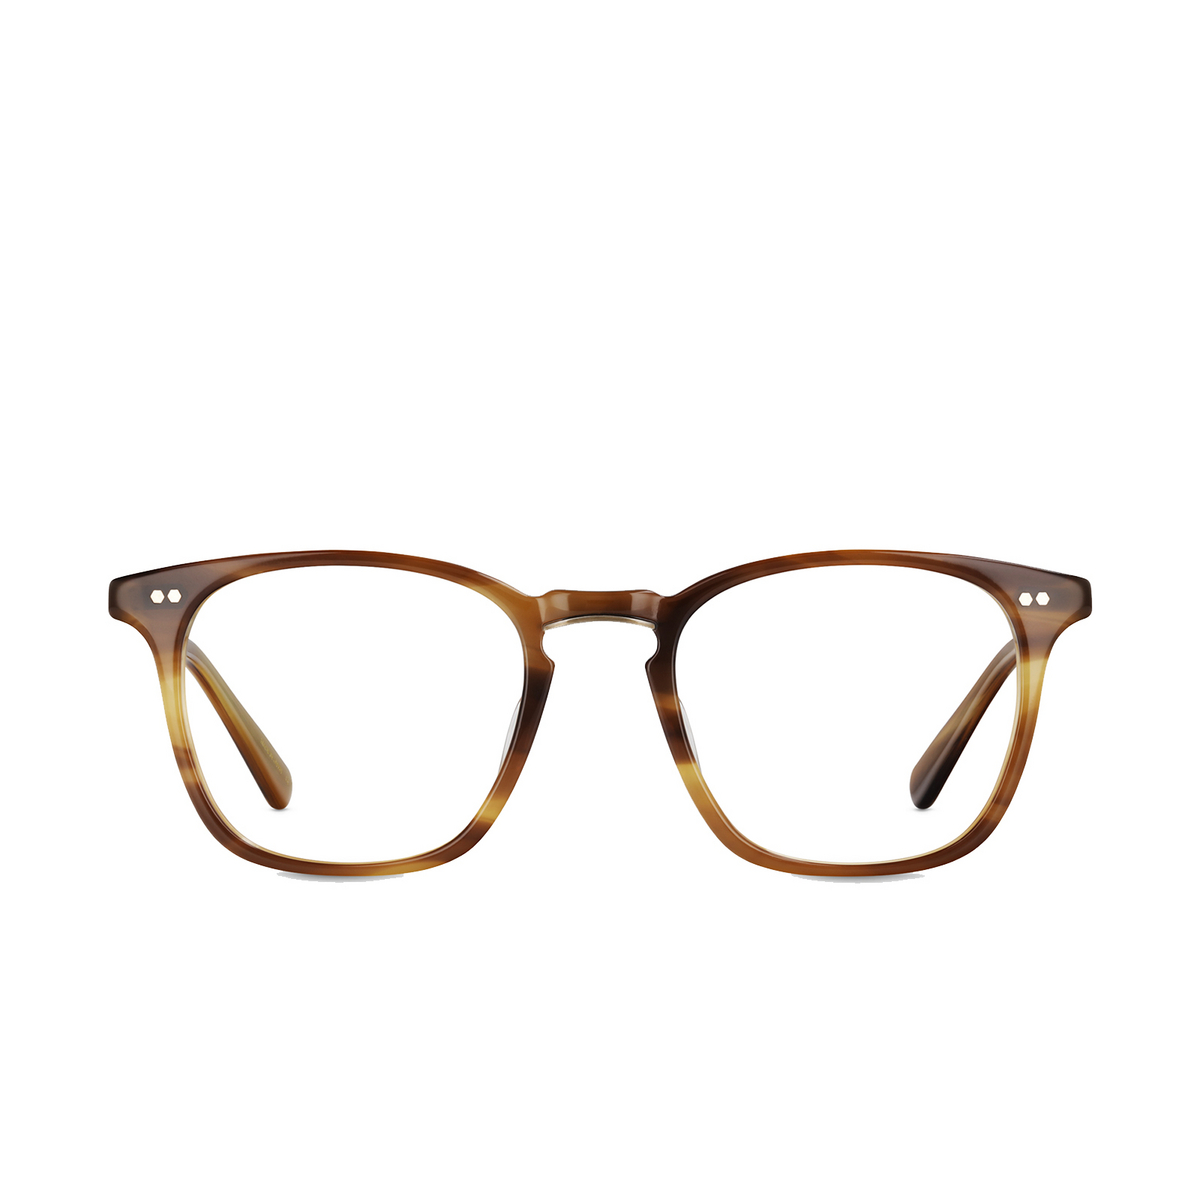 Mr. Leight® Square Eyeglasses: Getty C color Bw-atg - front view.